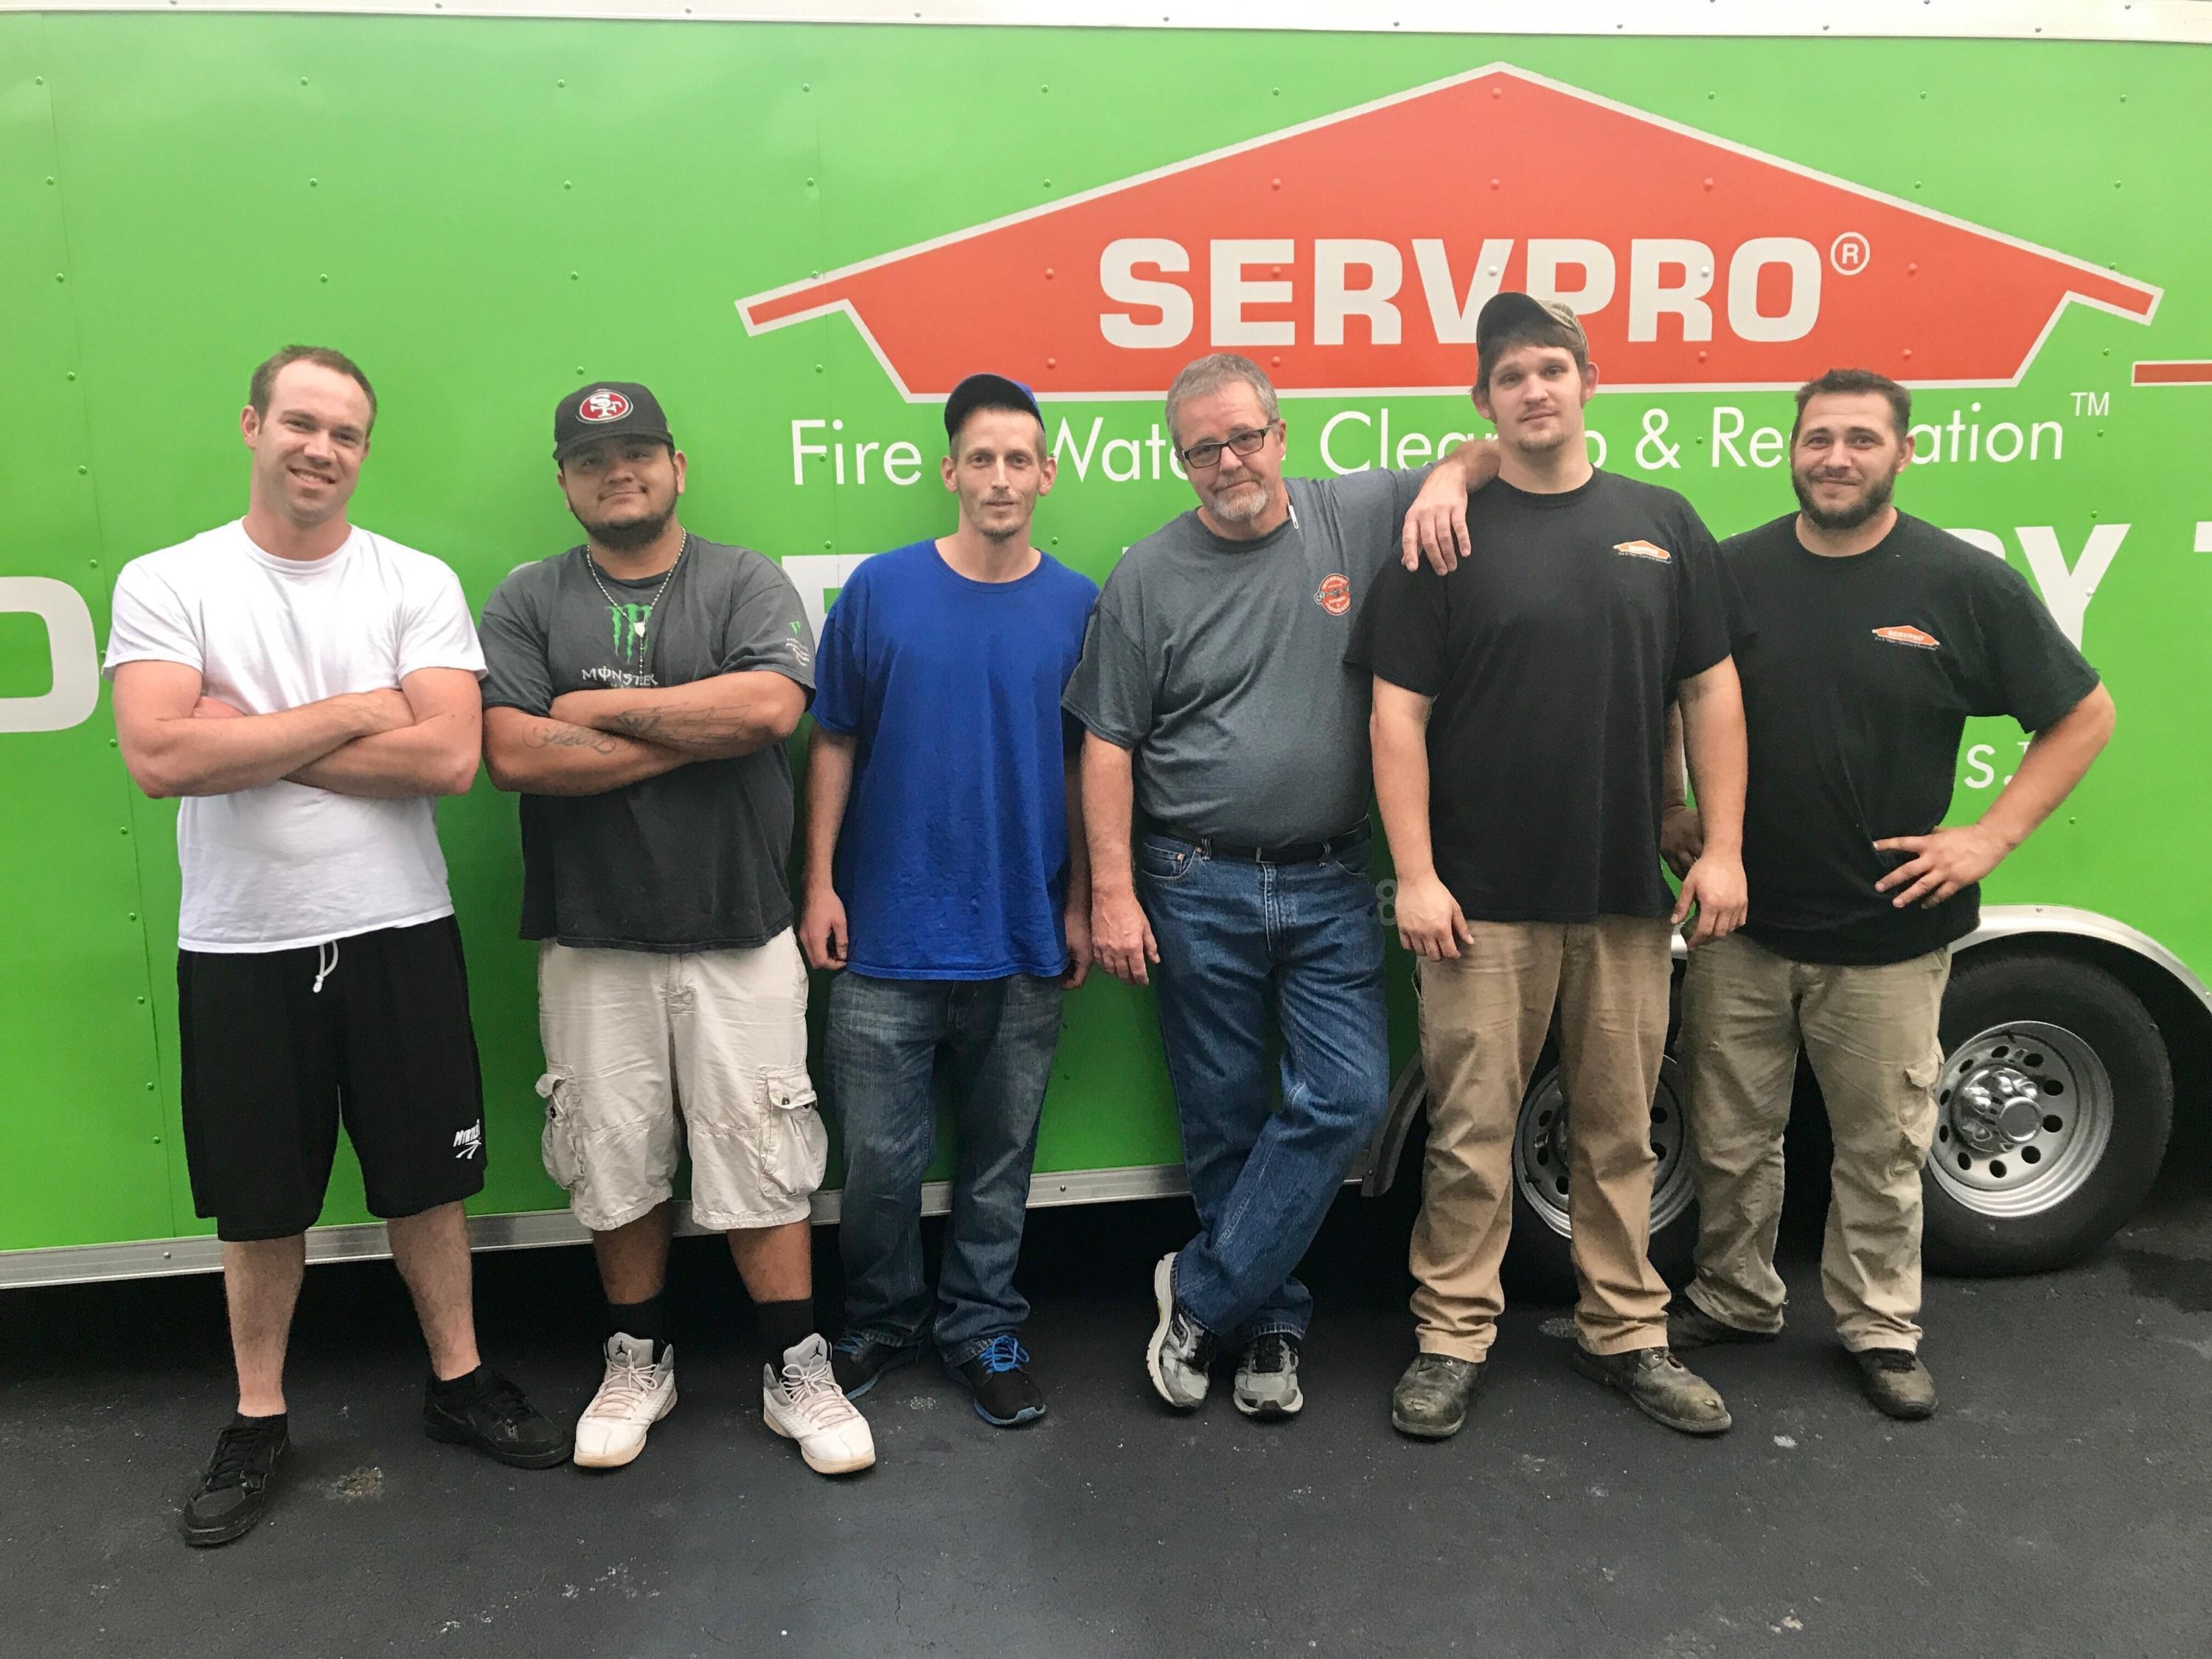 Our SERVPRO team is happy to serve you!